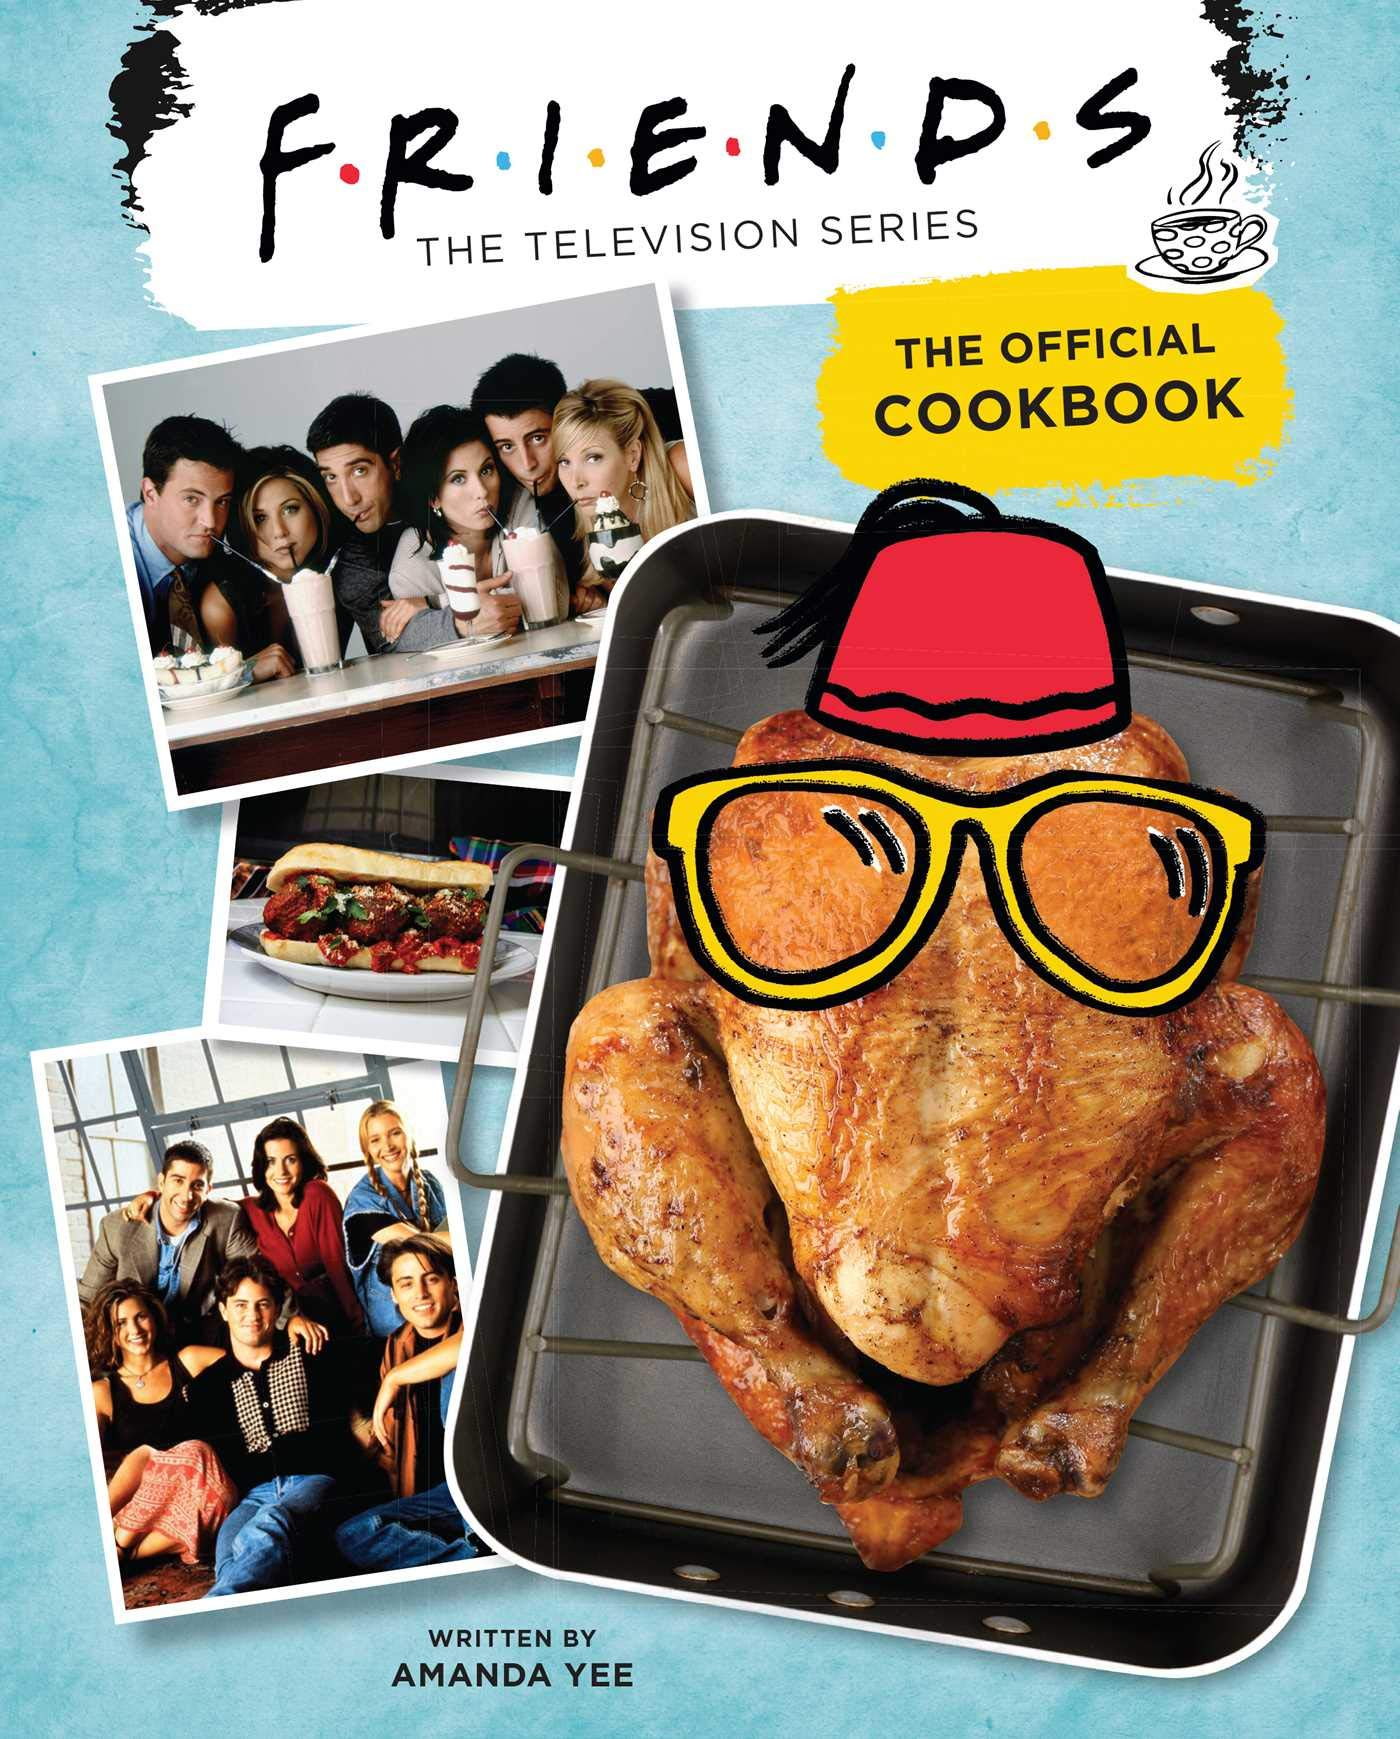 cookbook inspired by television shows